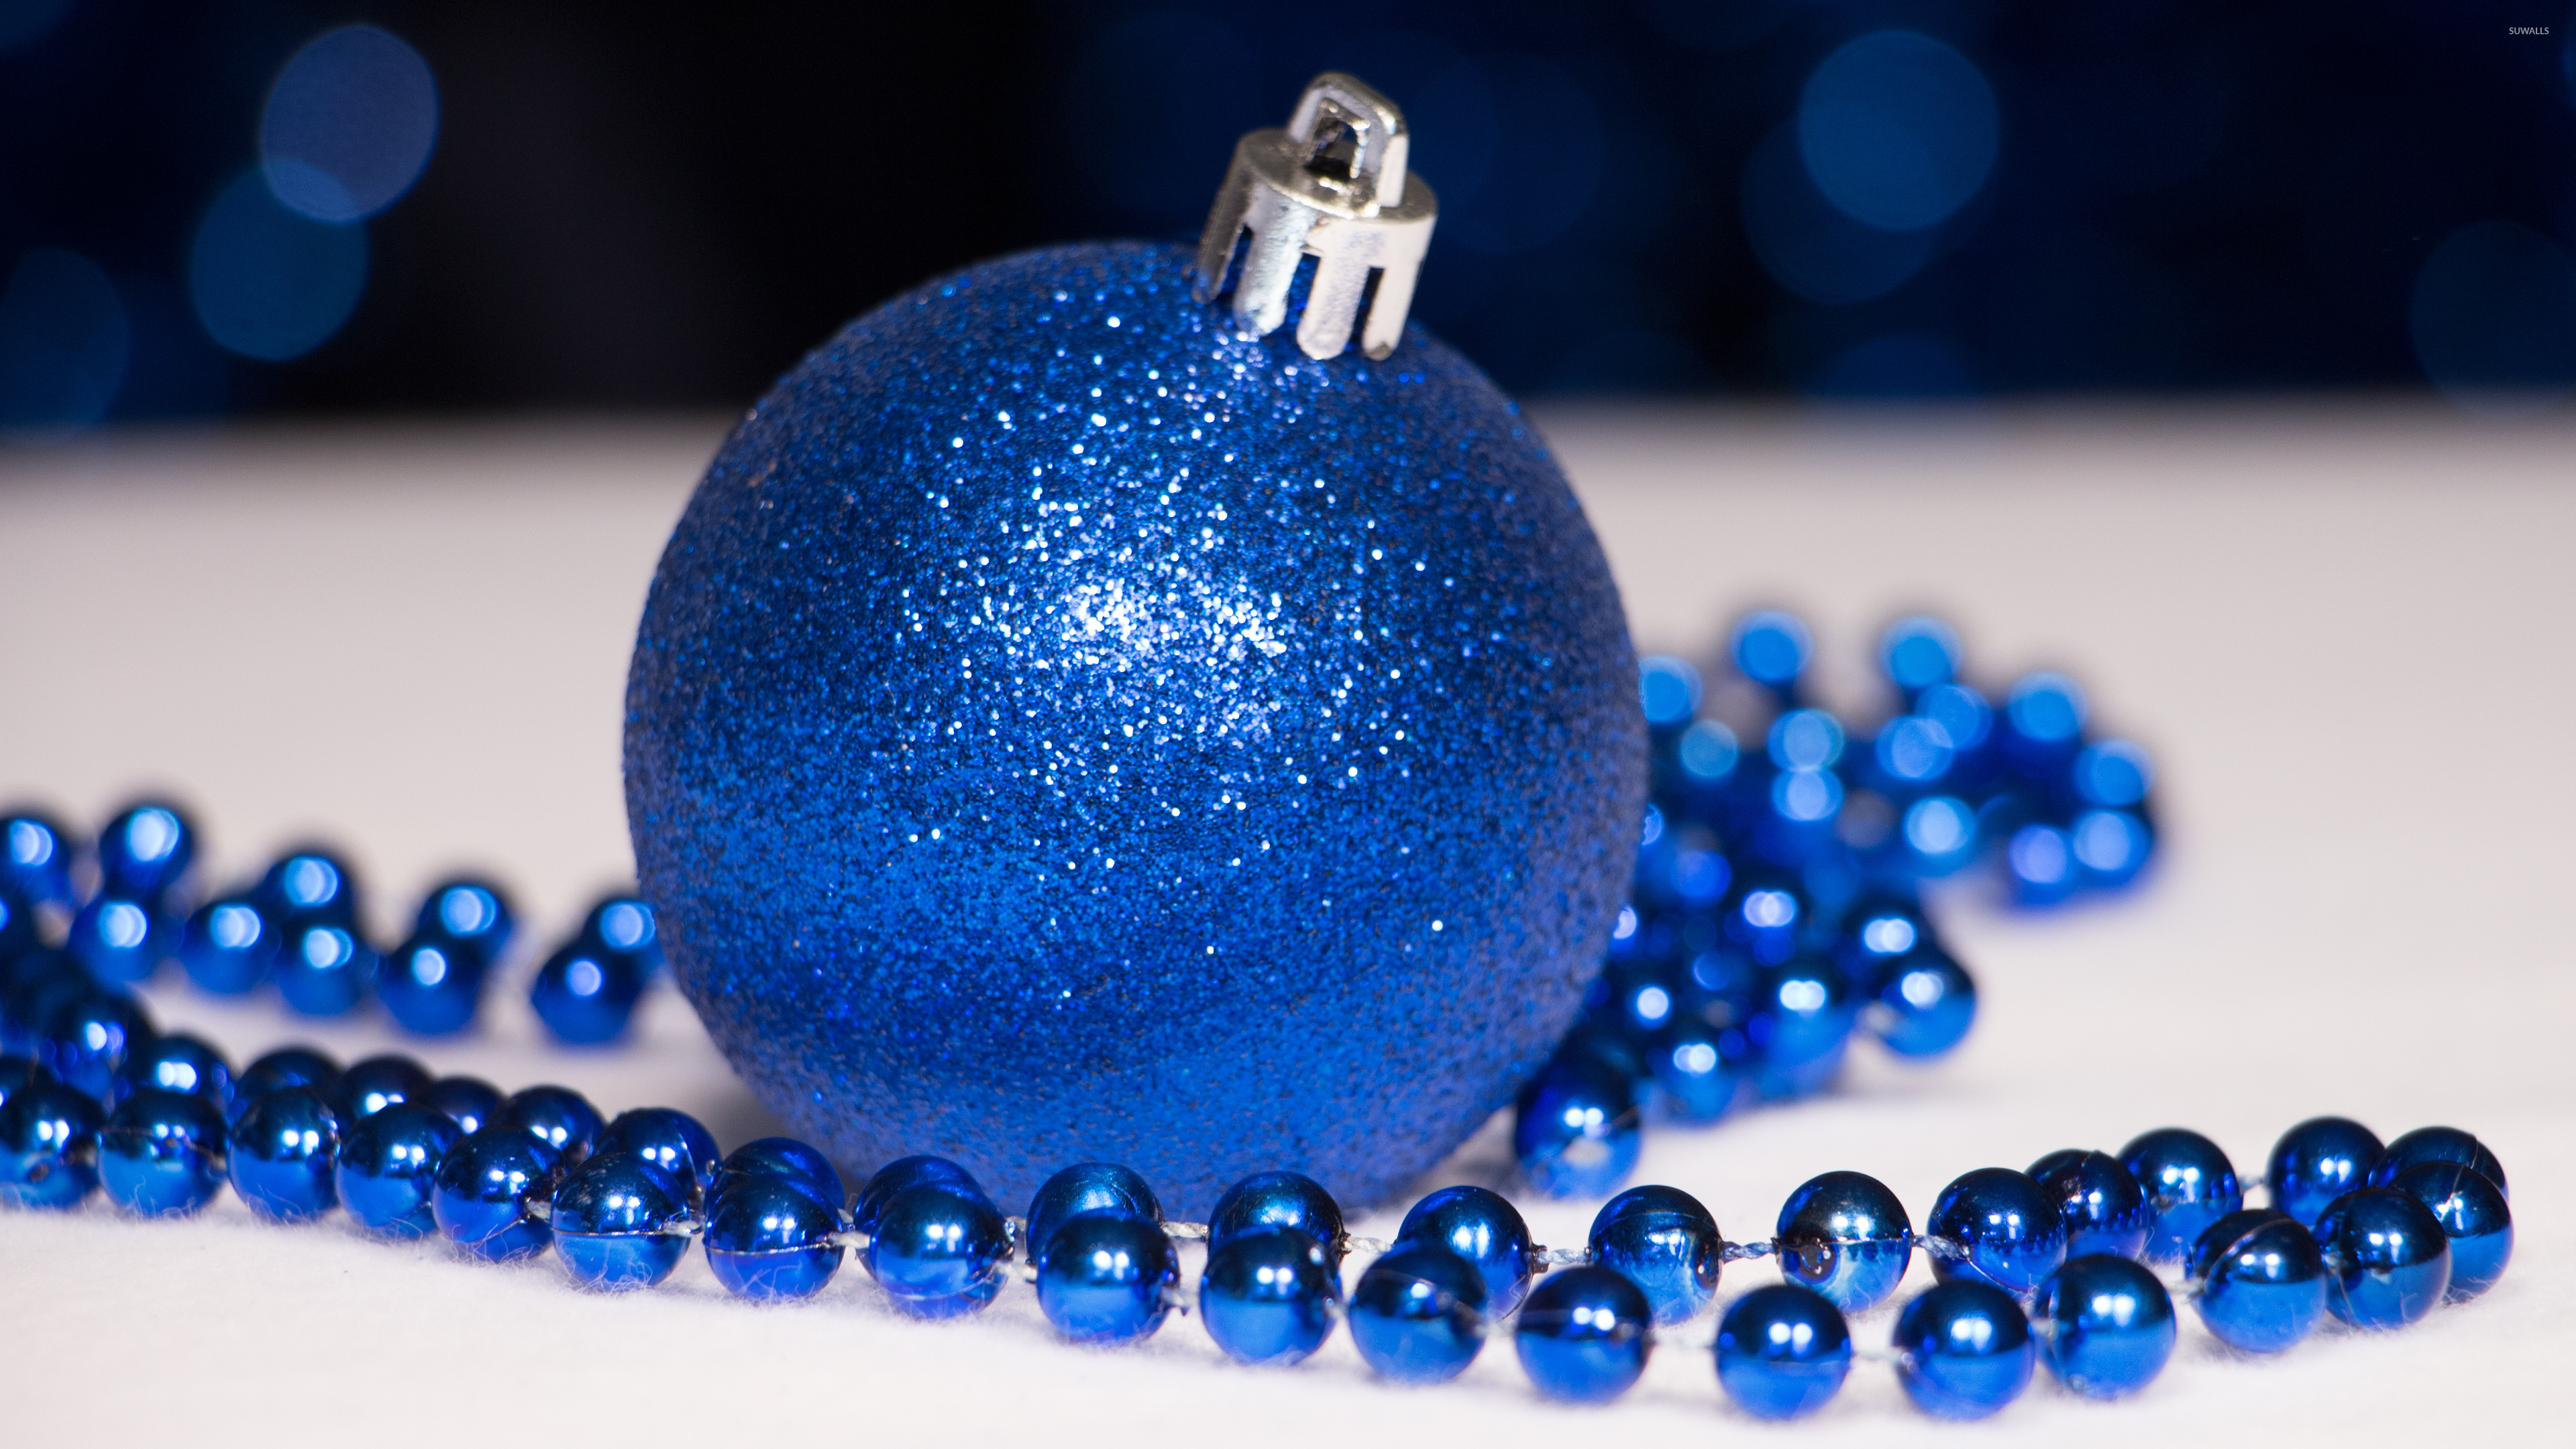 Blue Christmas ornaments wallpaper - Holiday wallpapers ...